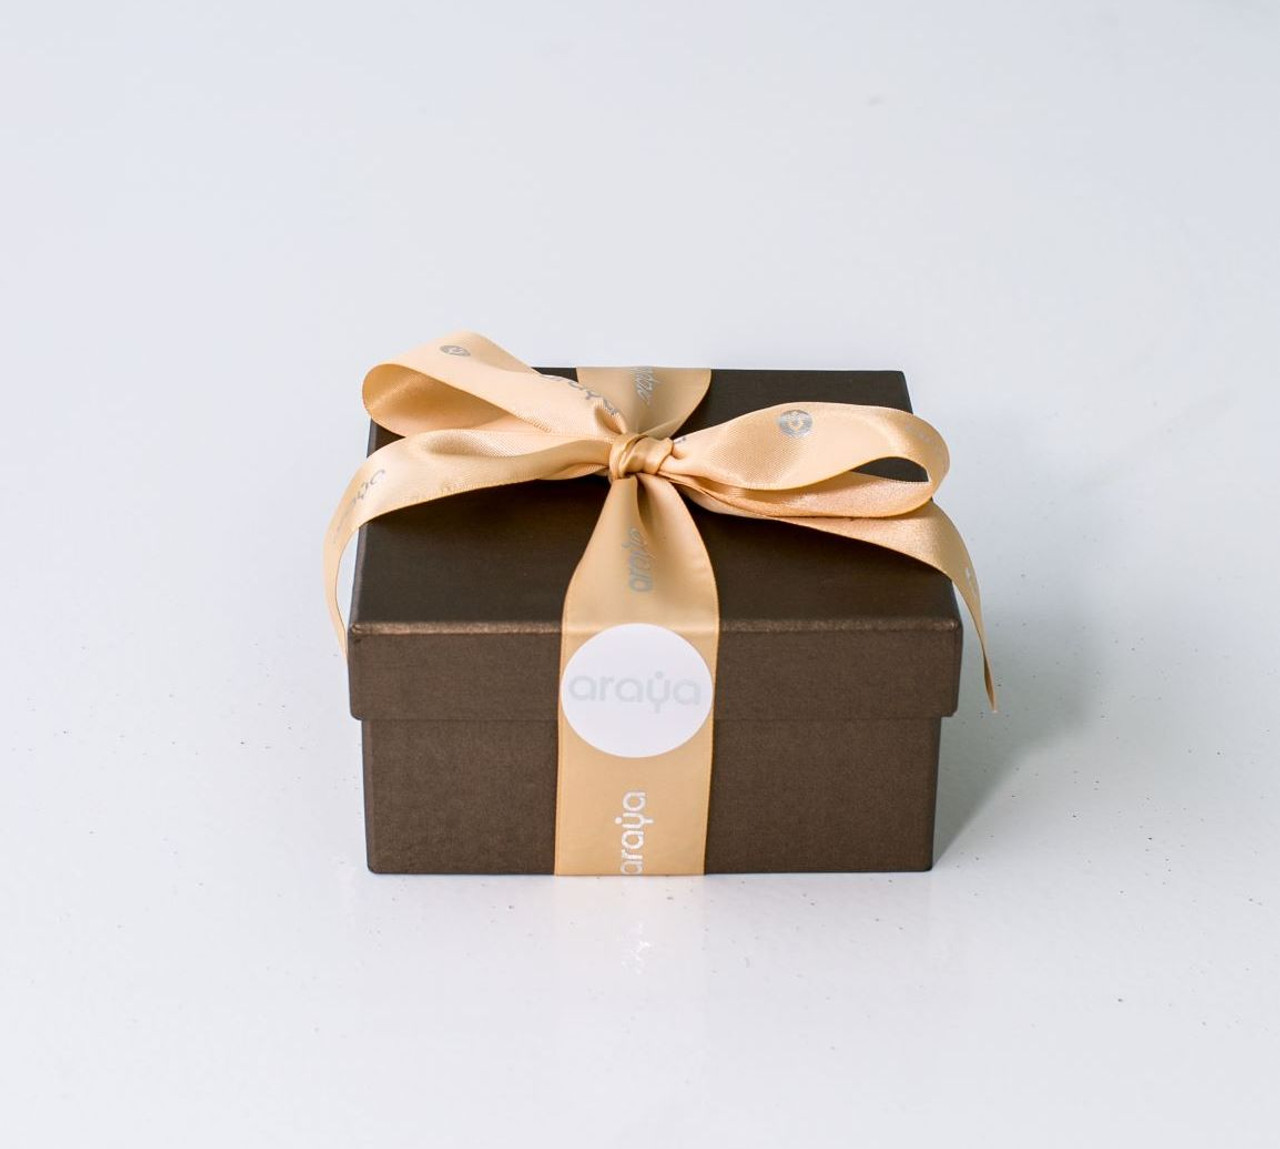 18 Chocolate Gift Box  - Available in Red & Bronze